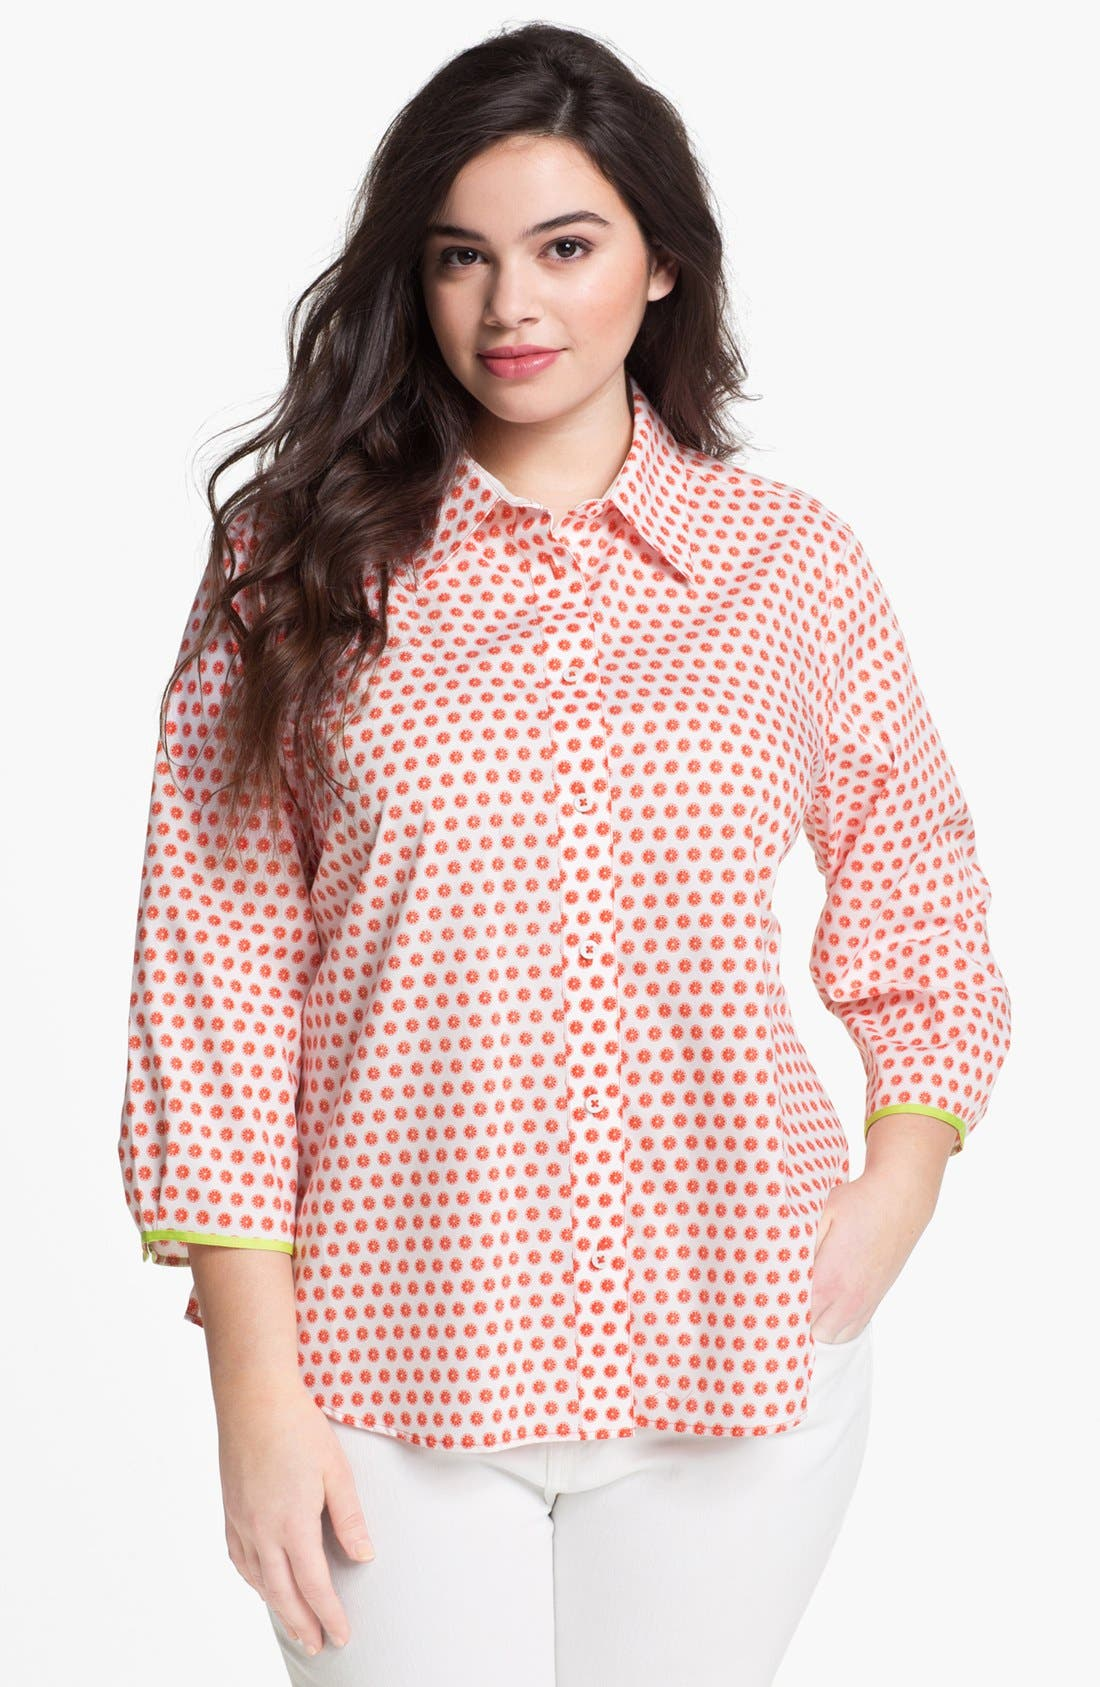 Alternate Image 1 Selected - Foxcroft Print Shaped Cotton Shirt (Plus Size)